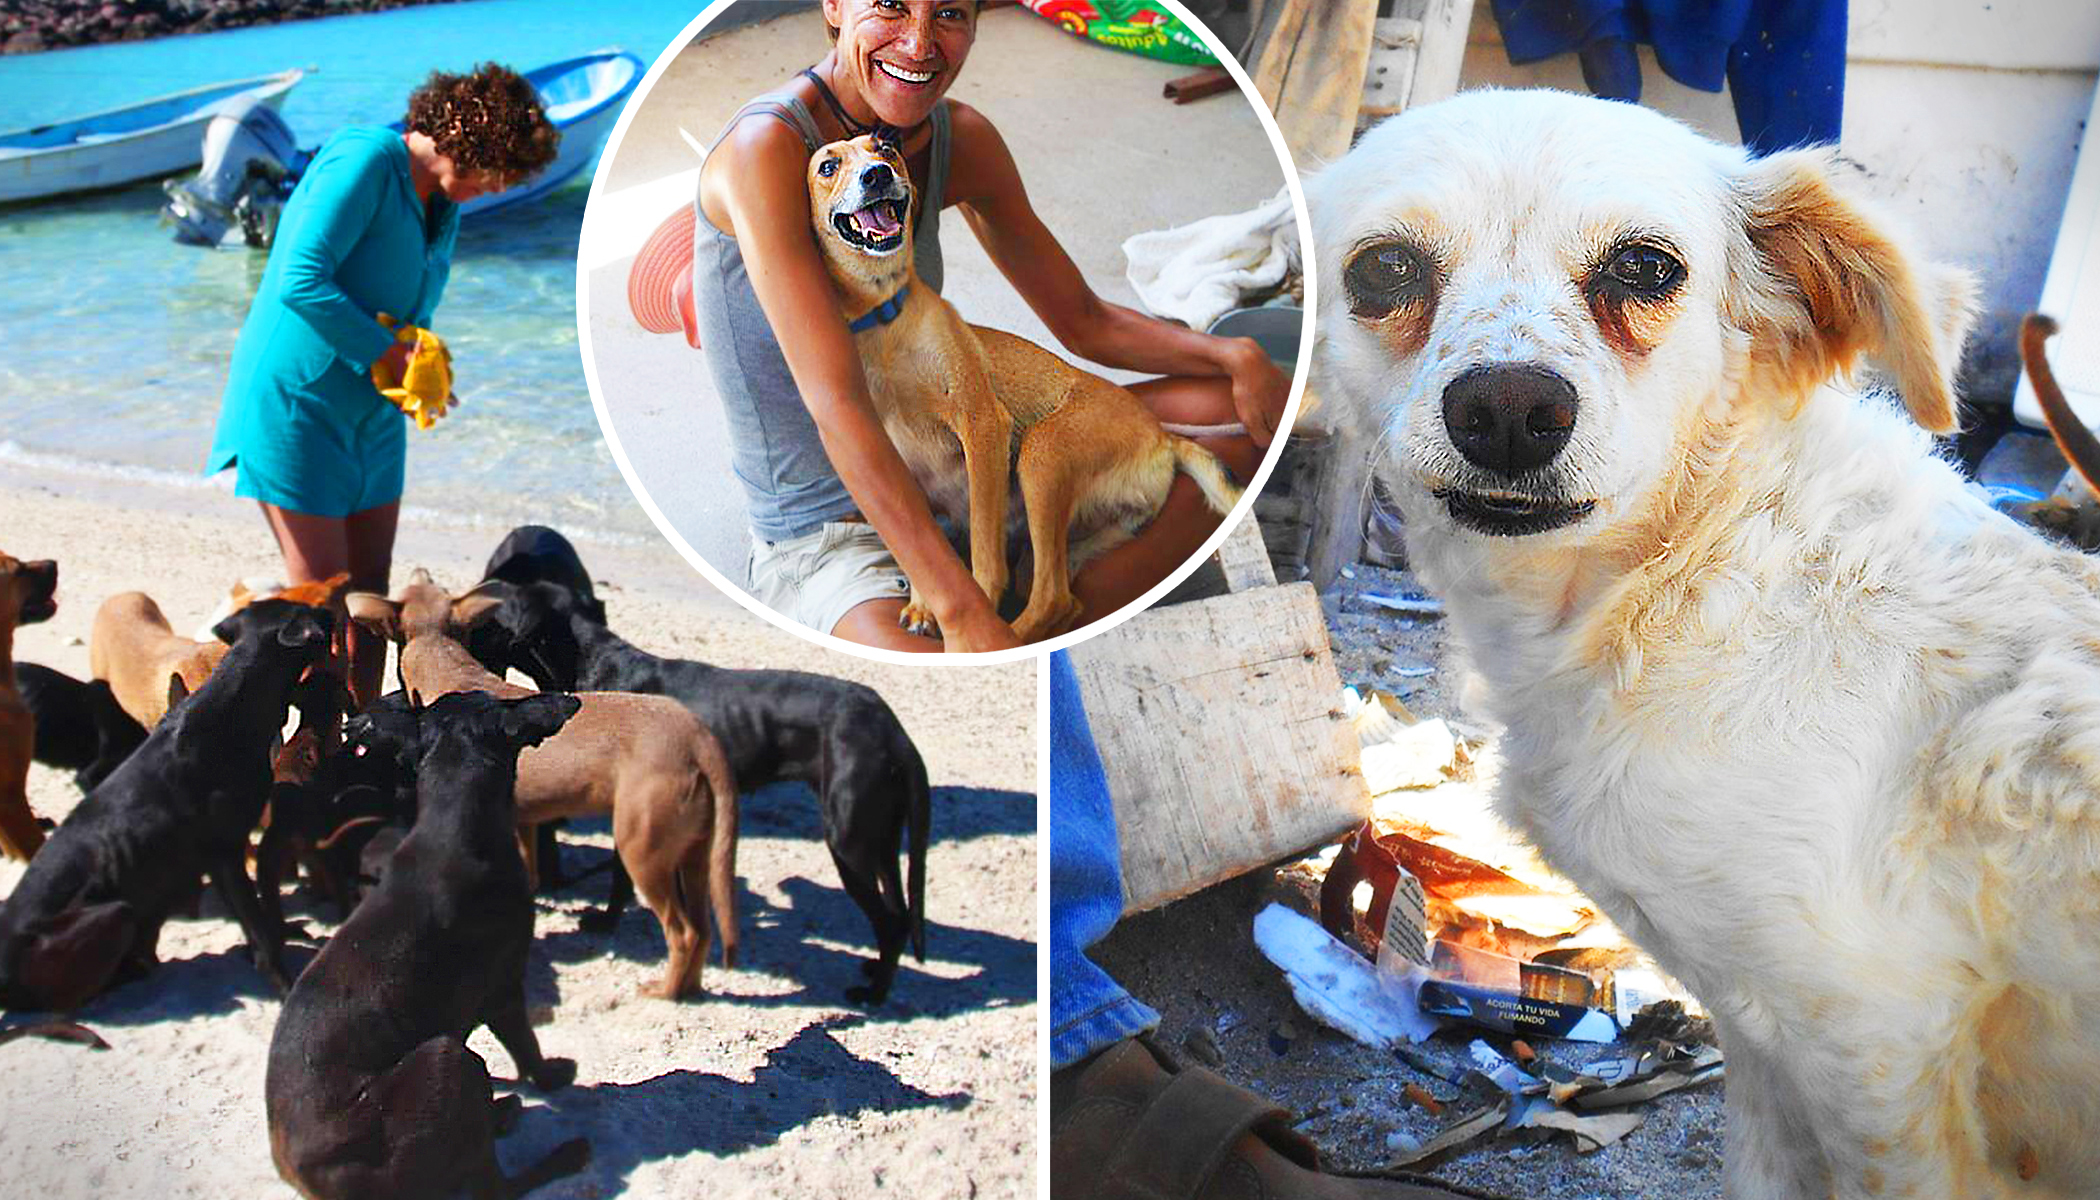 Vacationers Encounter Pack of Stray Dogs in Baja Mexico, and Decide to Give Them All a Home